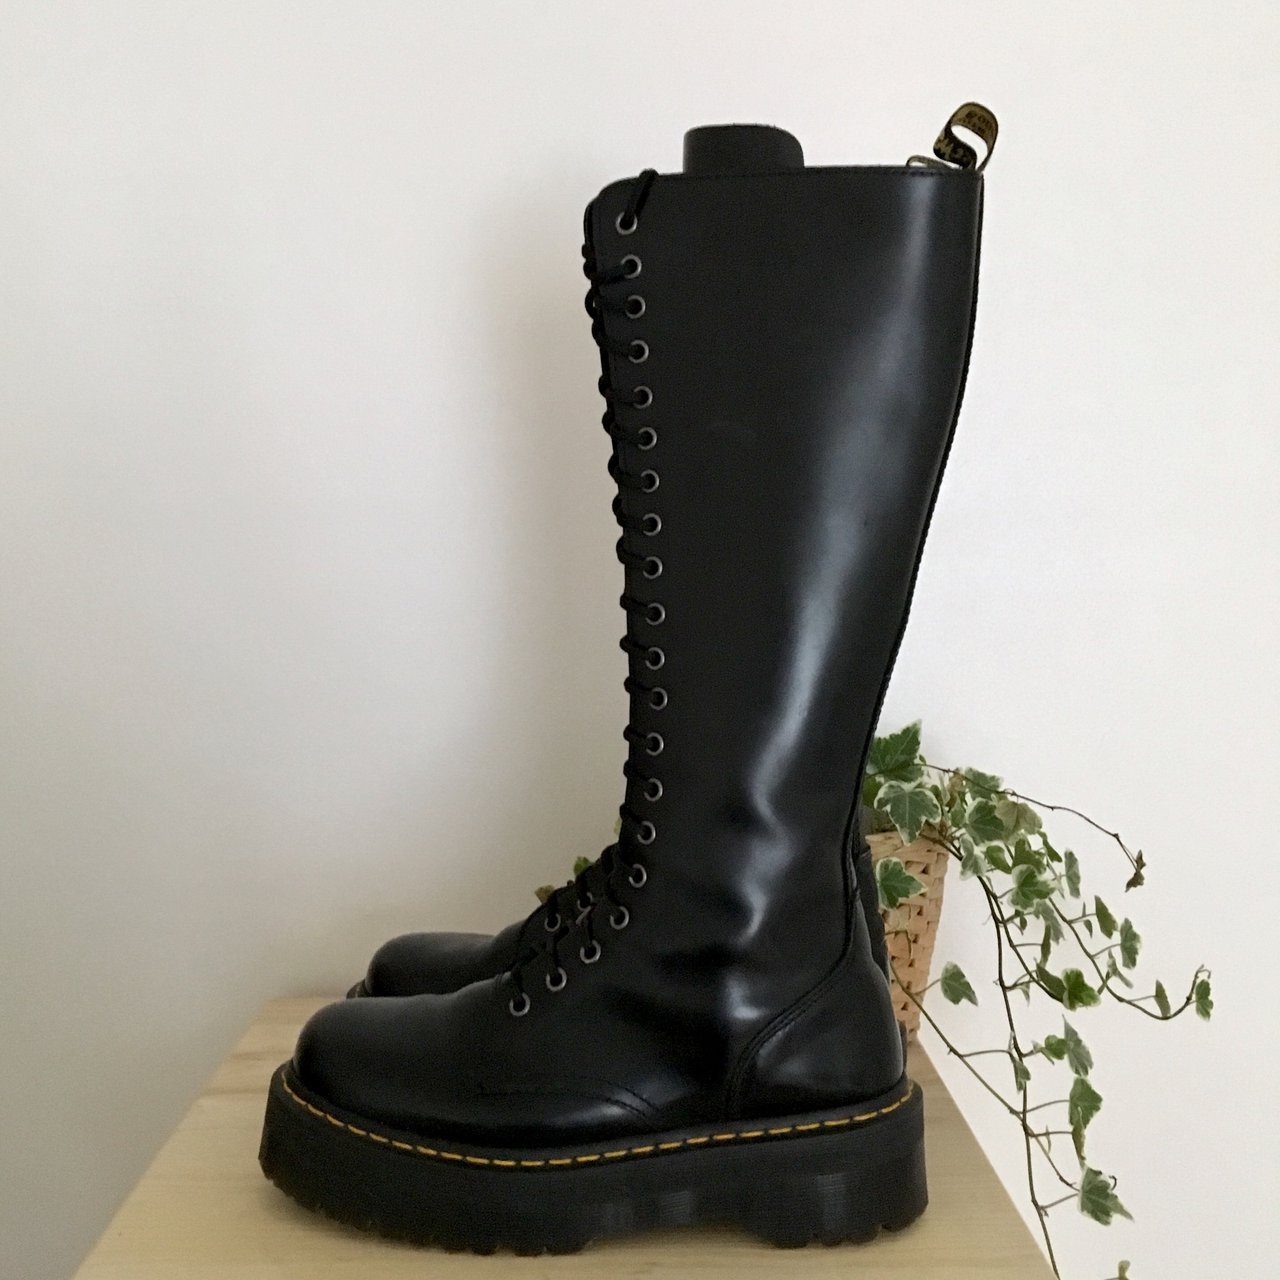 31088364a6229 @doctillyoudrop. last year. United Kingdom. Dr Martens super rare Britain  boots.